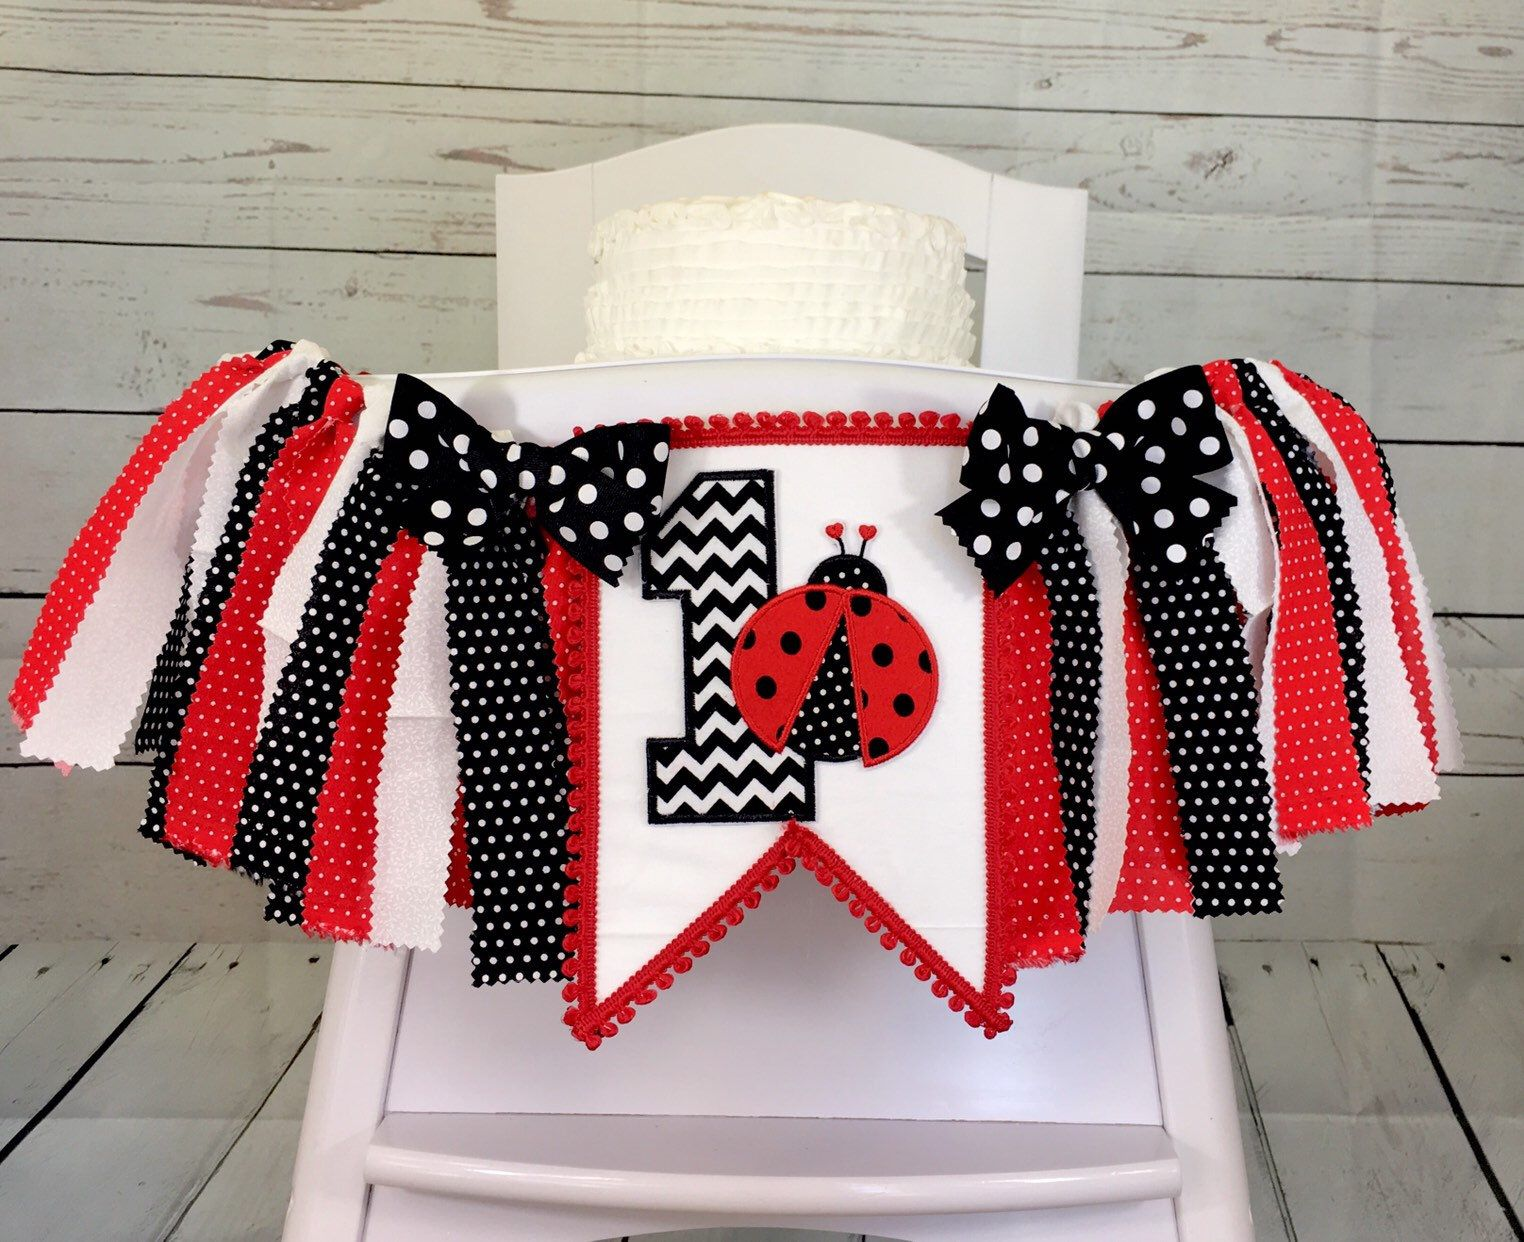 Excited to share this item from my etsy shop ladybug 1st